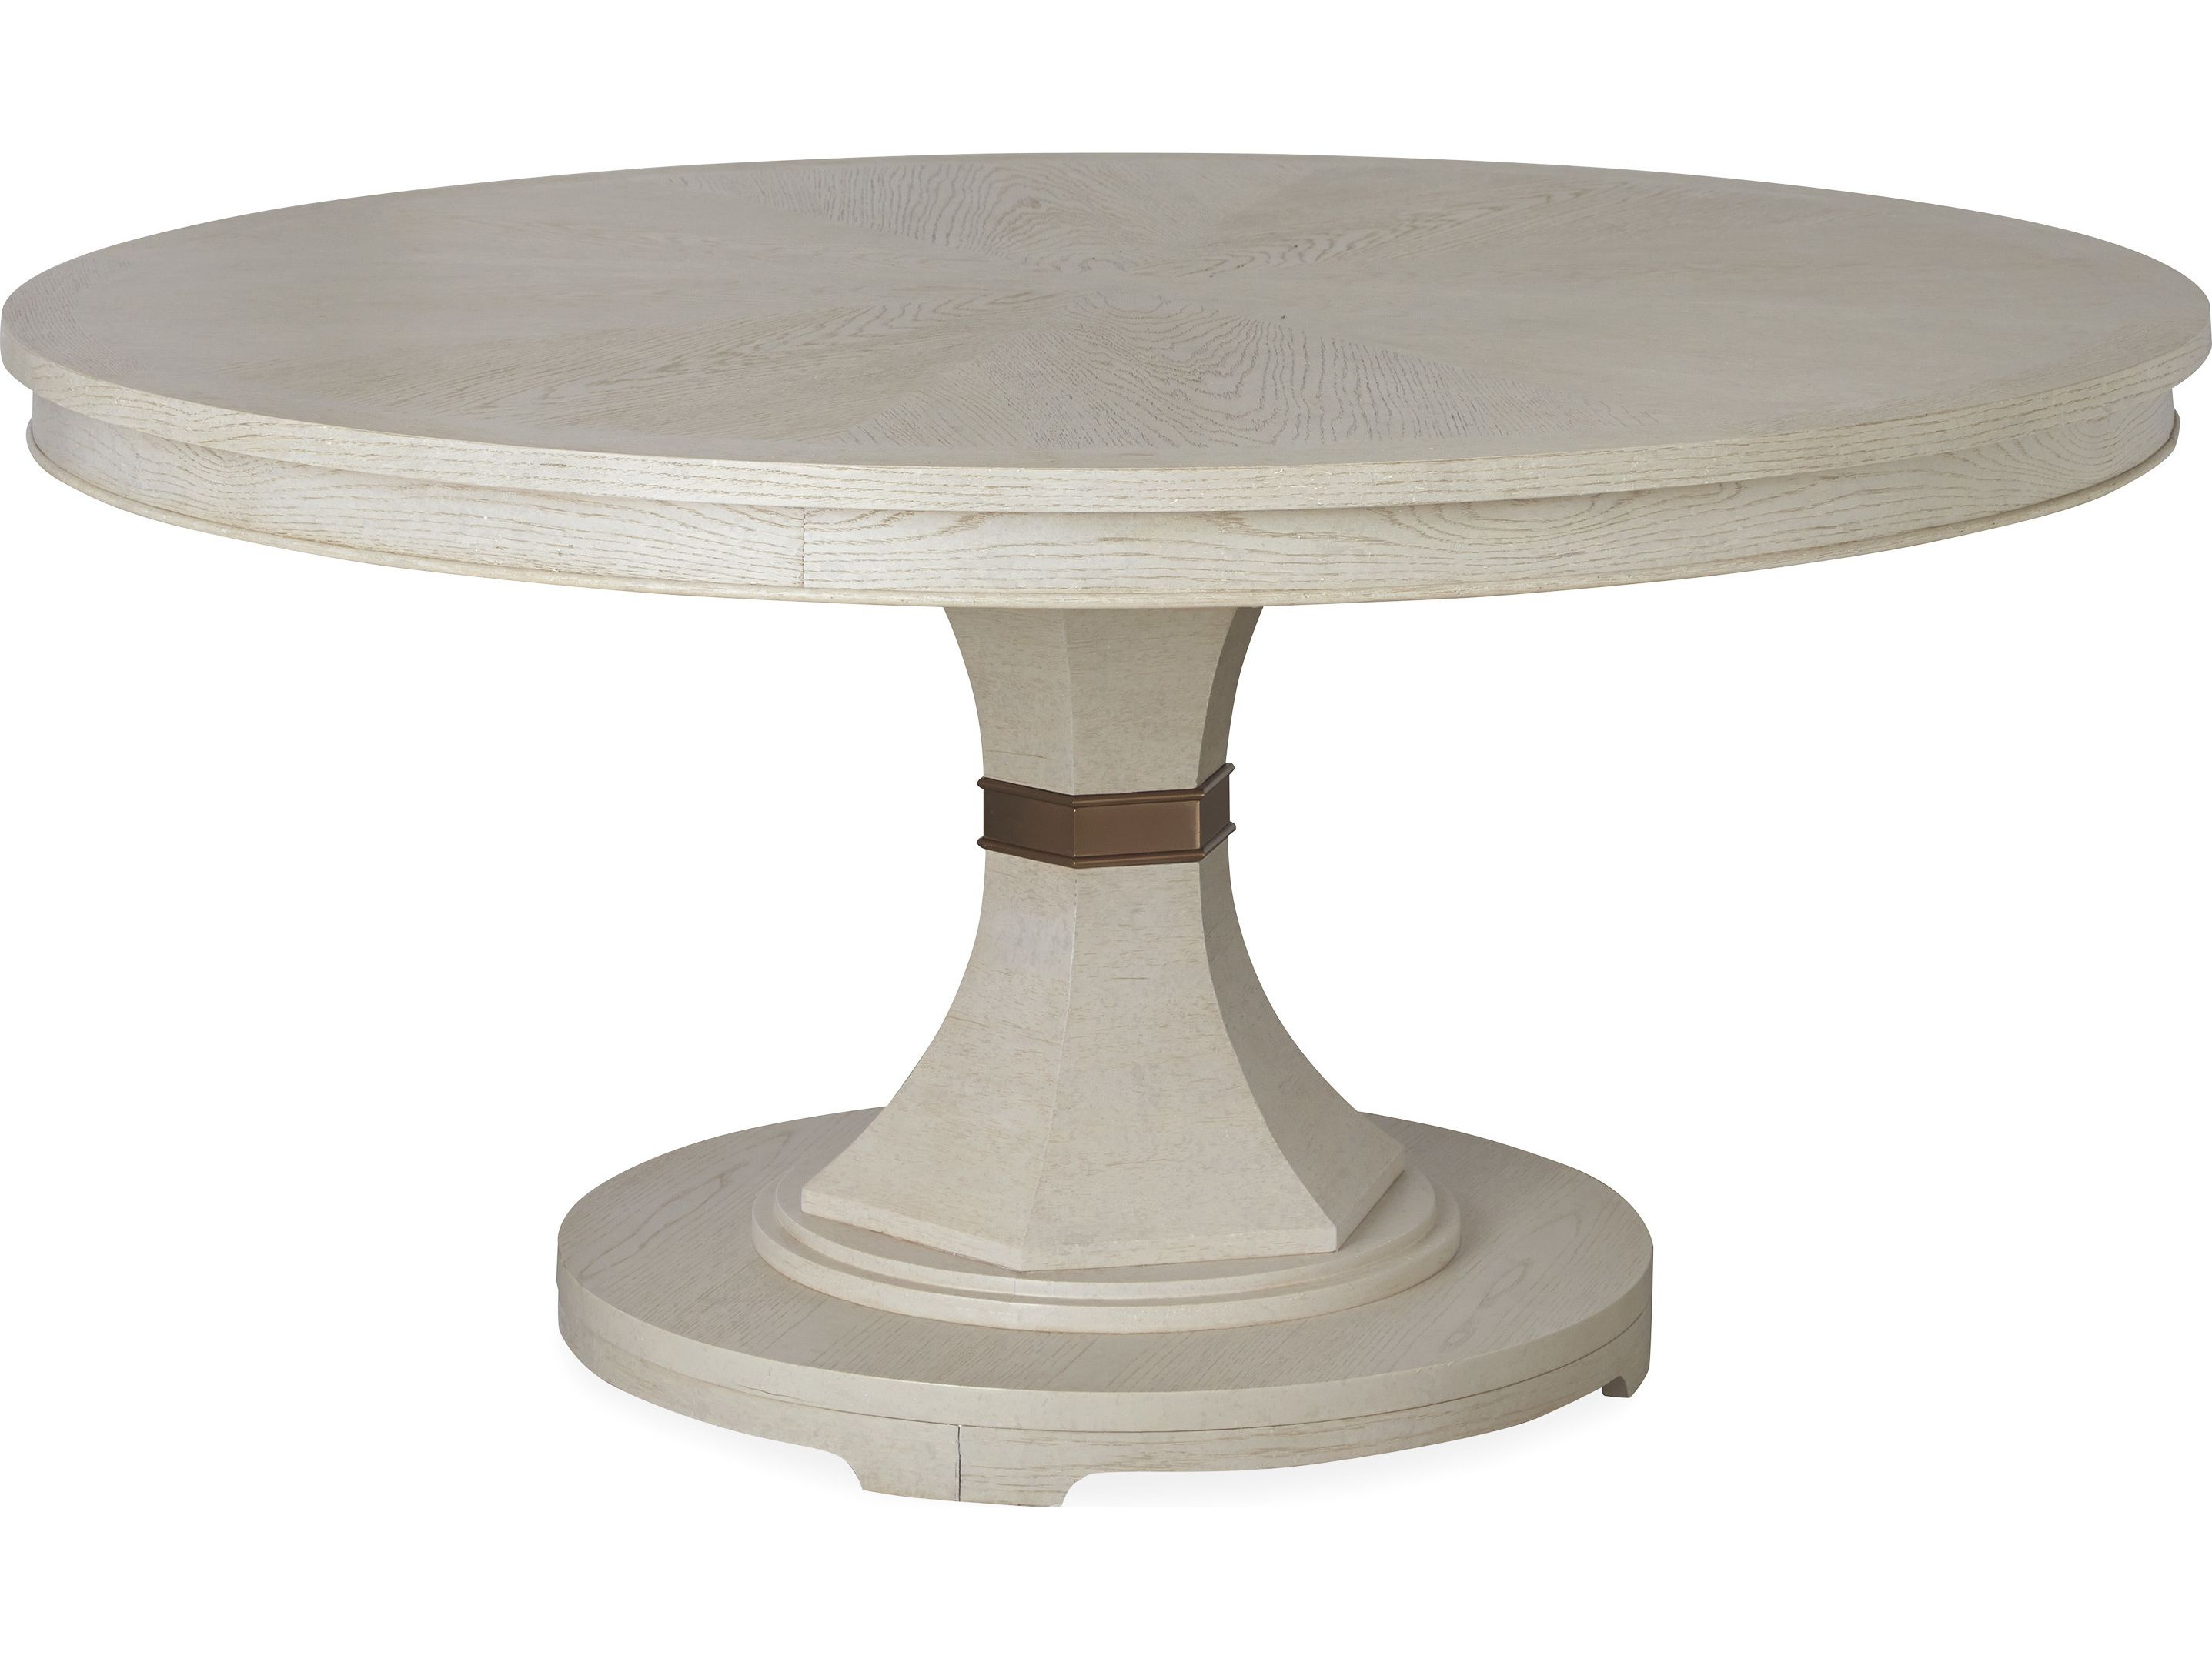 Universal Furniture California 80 Round Malibu Dining Table Dining Table Expandable Round Dining Table Luxury Dining Tables